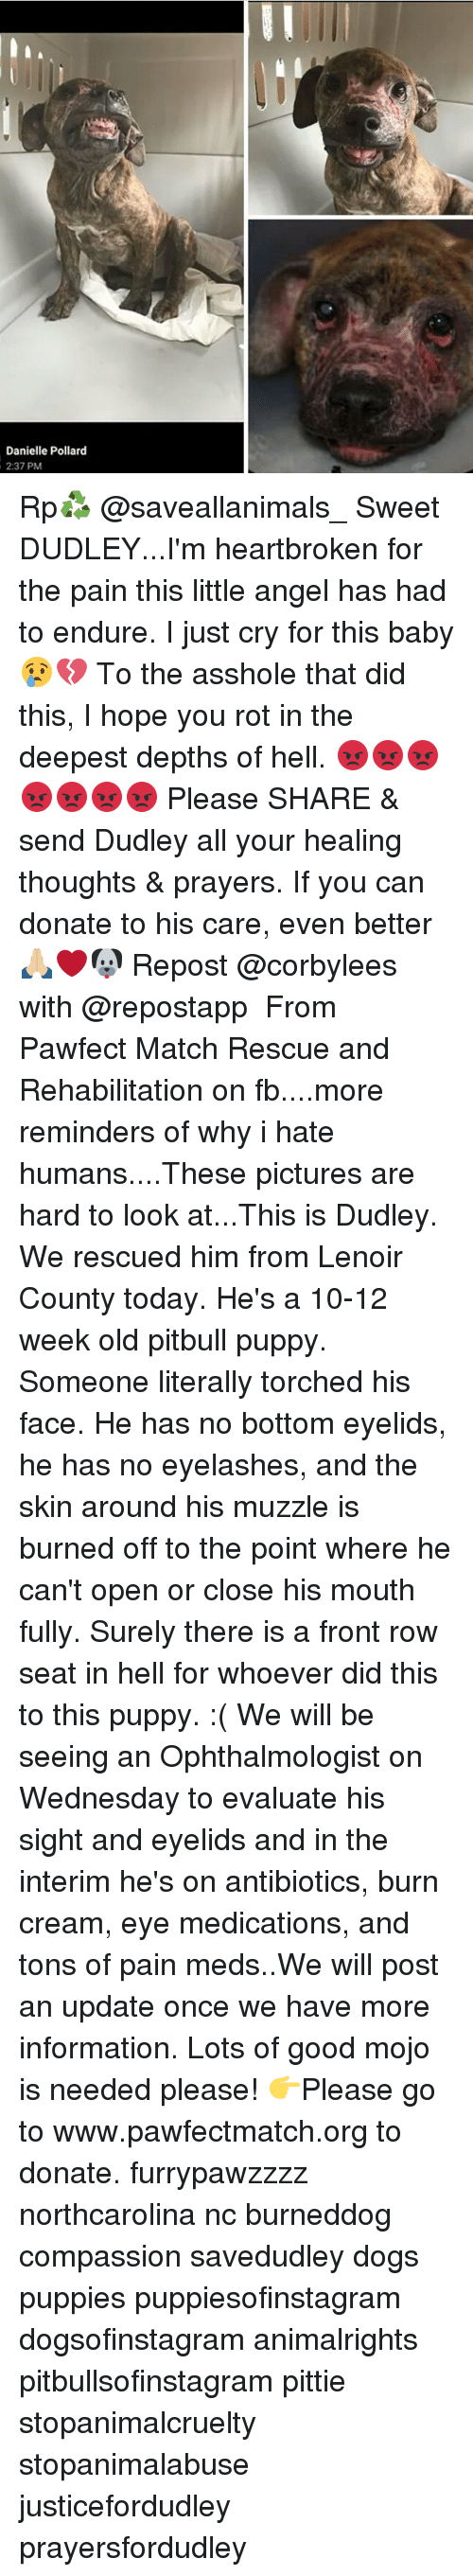 Memes, Pitbull, and Front Row: Danielle Pollard  2:37 PM Rp♻️ @saveallanimals_ Sweet DUDLEY...I'm heartbroken for the pain this little angel has had to endure. I just cry for this baby 😢💔 To the asshole that did this, I hope you rot in the deepest depths of hell. 😡😡😡😡😡😡😡 Please SHARE & send Dudley all your healing thoughts & prayers. If you can donate to his care, even better 🙏🏼❤🐶 Repost @corbylees with @repostapp ・・・ From Pawfect Match Rescue and Rehabilitation on fb....more reminders of why i hate humans....These pictures are hard to look at...This is Dudley. We rescued him from Lenoir County today. He's a 10-12 week old pitbull puppy. Someone literally torched his face. He has no bottom eyelids, he has no eyelashes, and the skin around his muzzle is burned off to the point where he can't open or close his mouth fully. Surely there is a front row seat in hell for whoever did this to this puppy. :( We will be seeing an Ophthalmologist on Wednesday to evaluate his sight and eyelids and in the interim he's on antibiotics, burn cream, eye medications, and tons of pain meds..We will post an update once we have more information. Lots of good mojo is needed please! 👉Please go to www.pawfectmatch.org to donate. furrypawzzzz northcarolina nc burneddog compassion savedudley dogs puppies puppiesofinstagram dogsofinstagram animalrights pitbullsofinstagram pittie stopanimalcruelty stopanimalabuse justicefordudley prayersfordudley